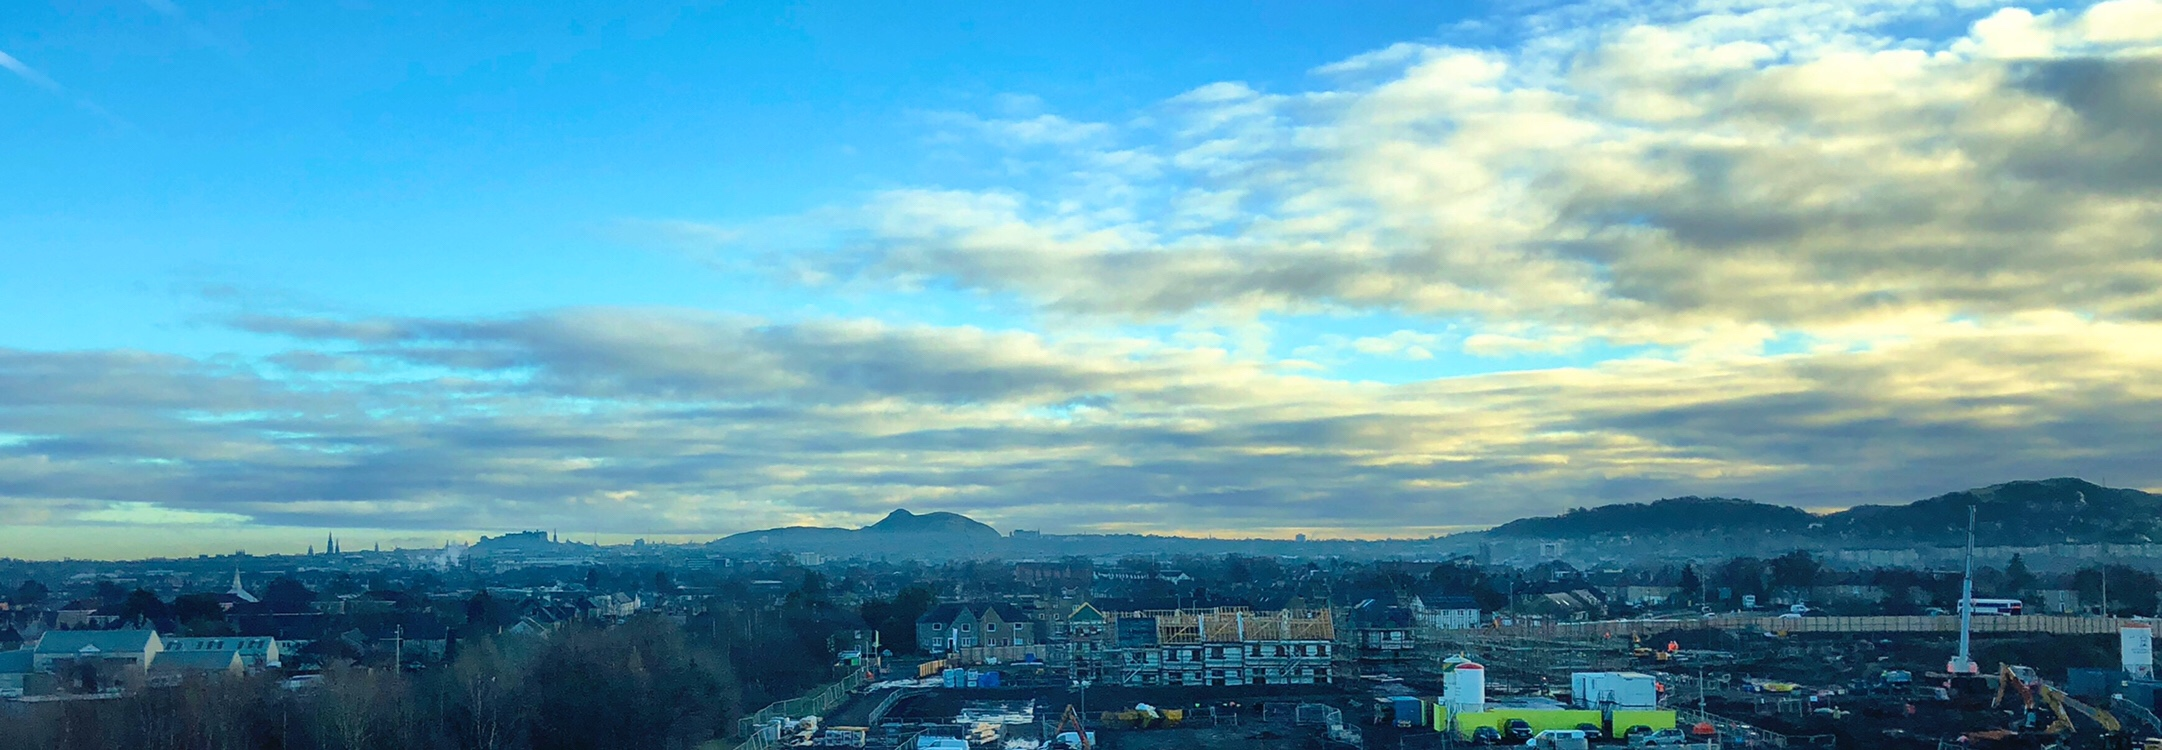 Edinburgh - Taken from the 5th floor of the Napier Sighthill Building.